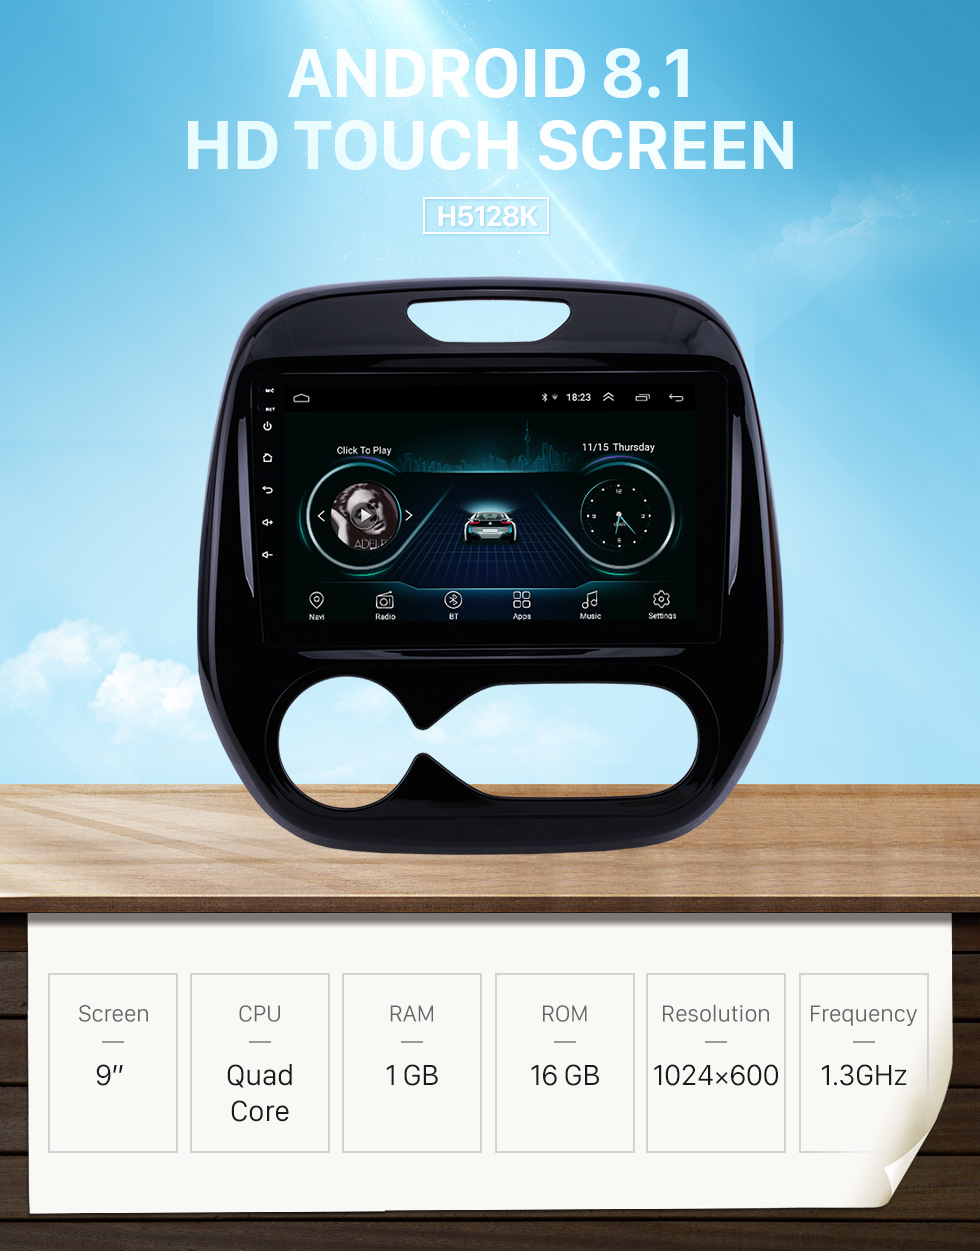 gaoweipeng 9Touch Screen Double DIN for Renault Captur Clio 2013 to 2015 Android 8.1 GPS Navigation Mirror Link Car Radio BT FM AM MP5 WiFi AUX SWC DAB